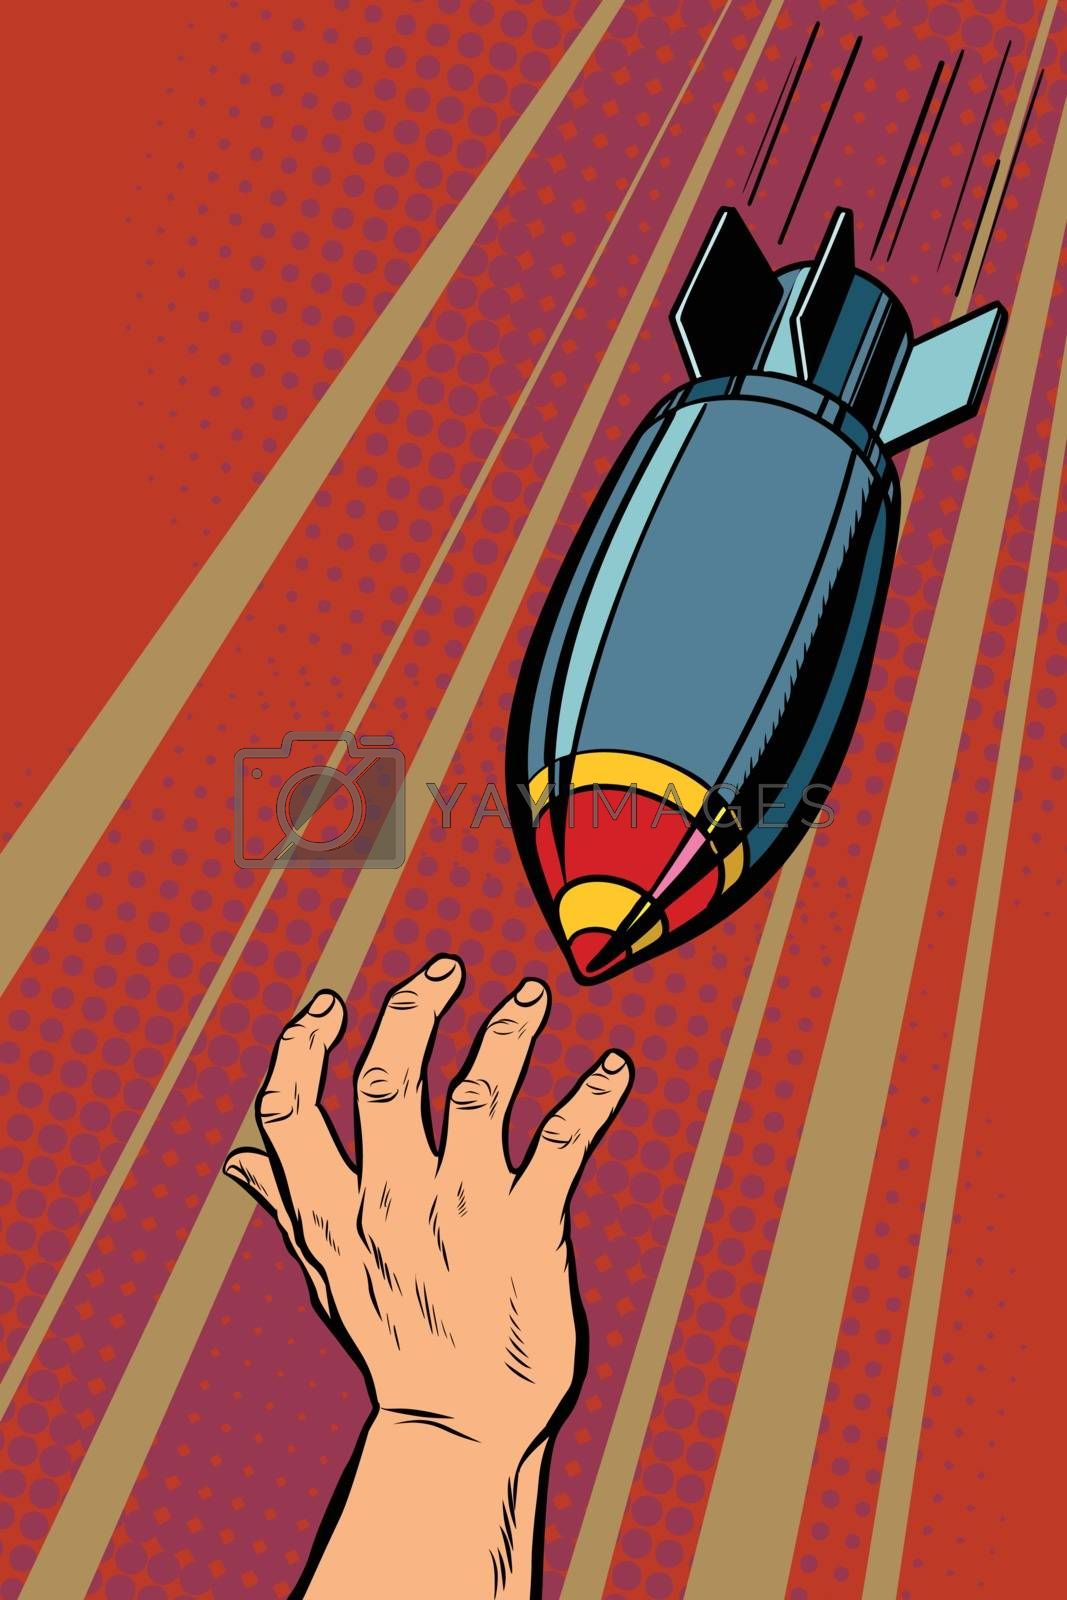 War bombs falling on people. Pop art retro vector illustration vintage kitsch drawing